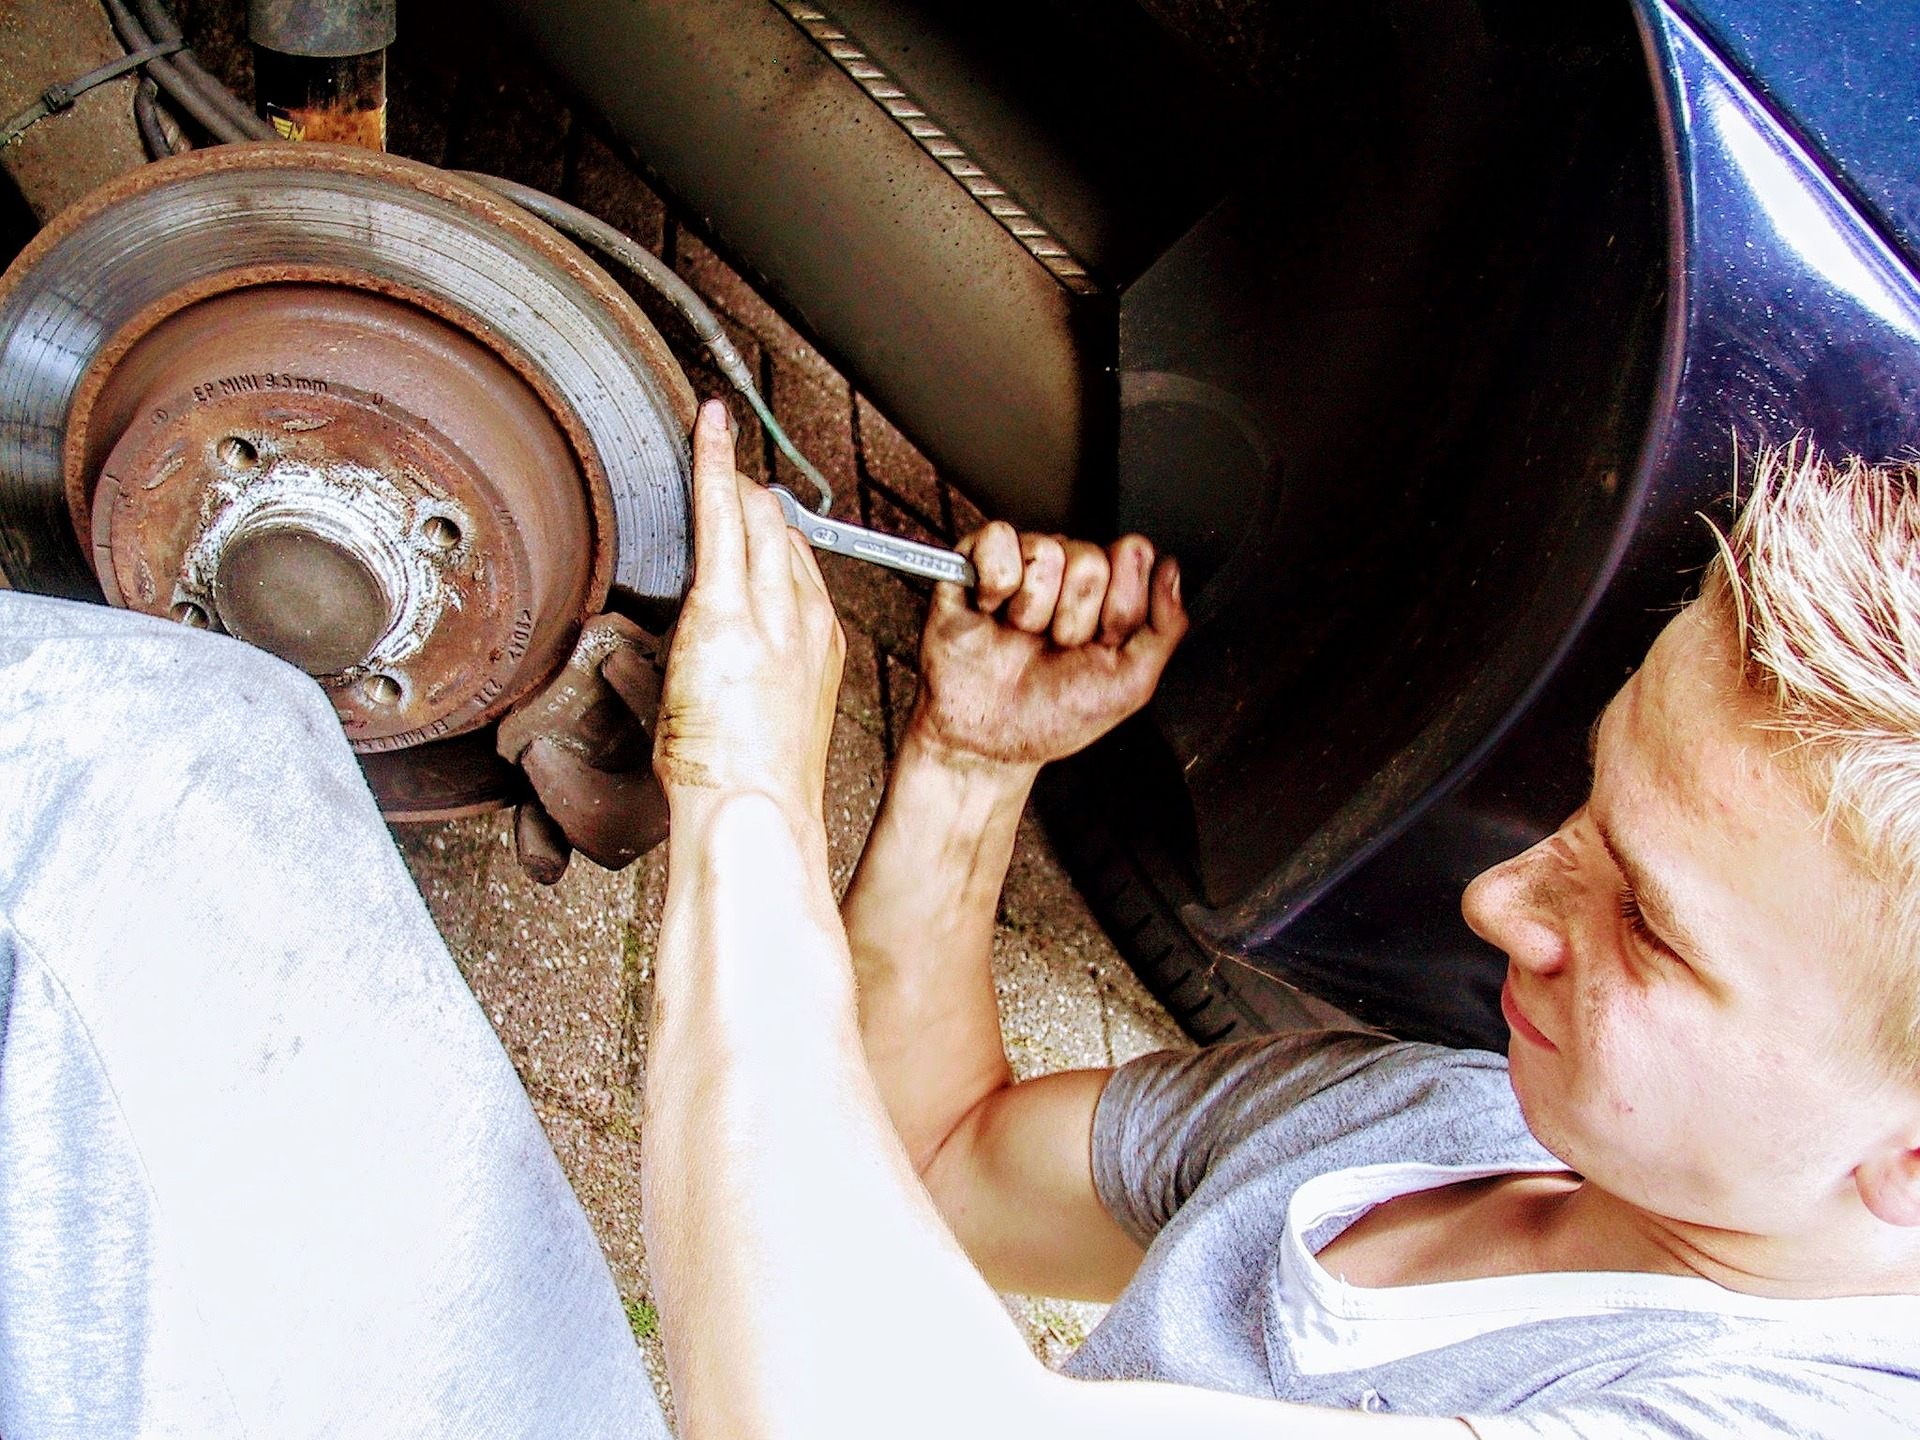 An image of a car mechanic fixing brakes.